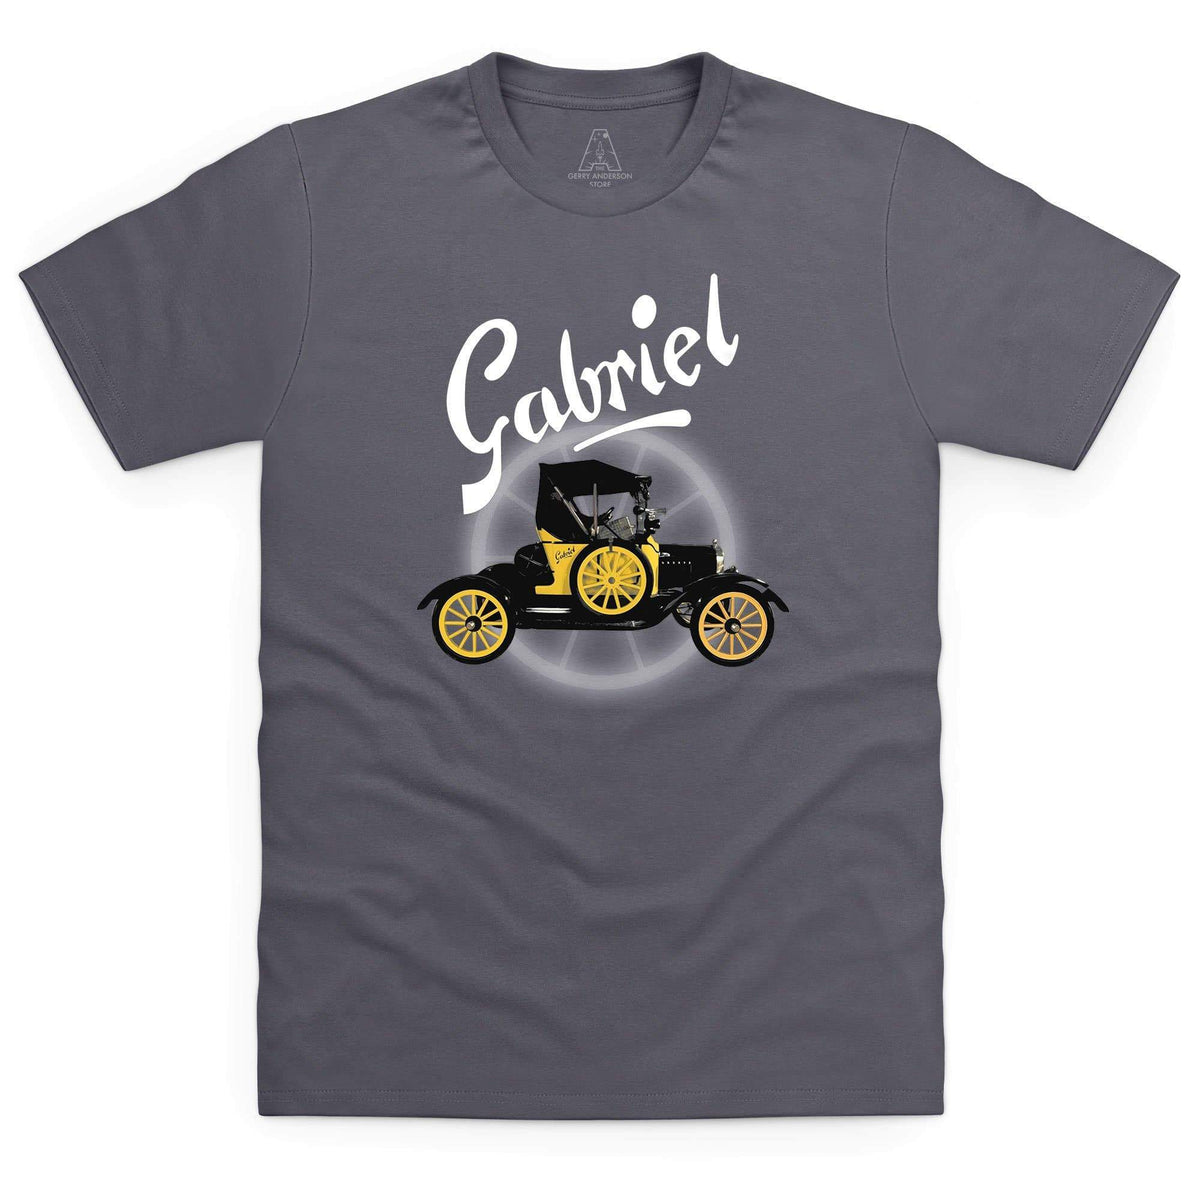 The Secret Service Gabriel Men's T-Shirt [Official & Exclusive] - The Gerry Anderson Store